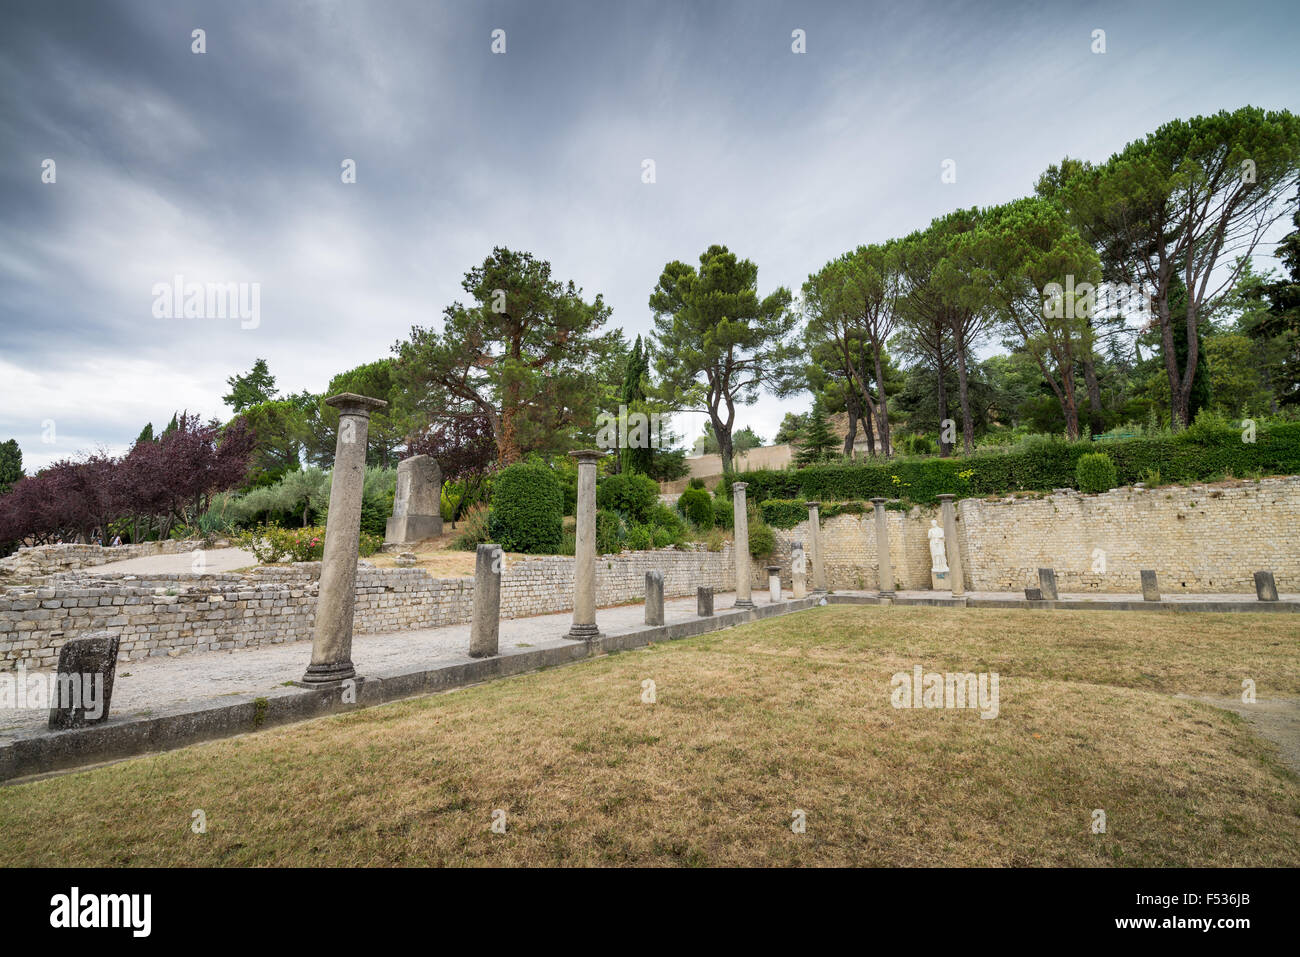 Roman Ruins, Vaison-la-Romaine, Quartier de Puymin, Provence, France, EU, Europe. Stock Photo